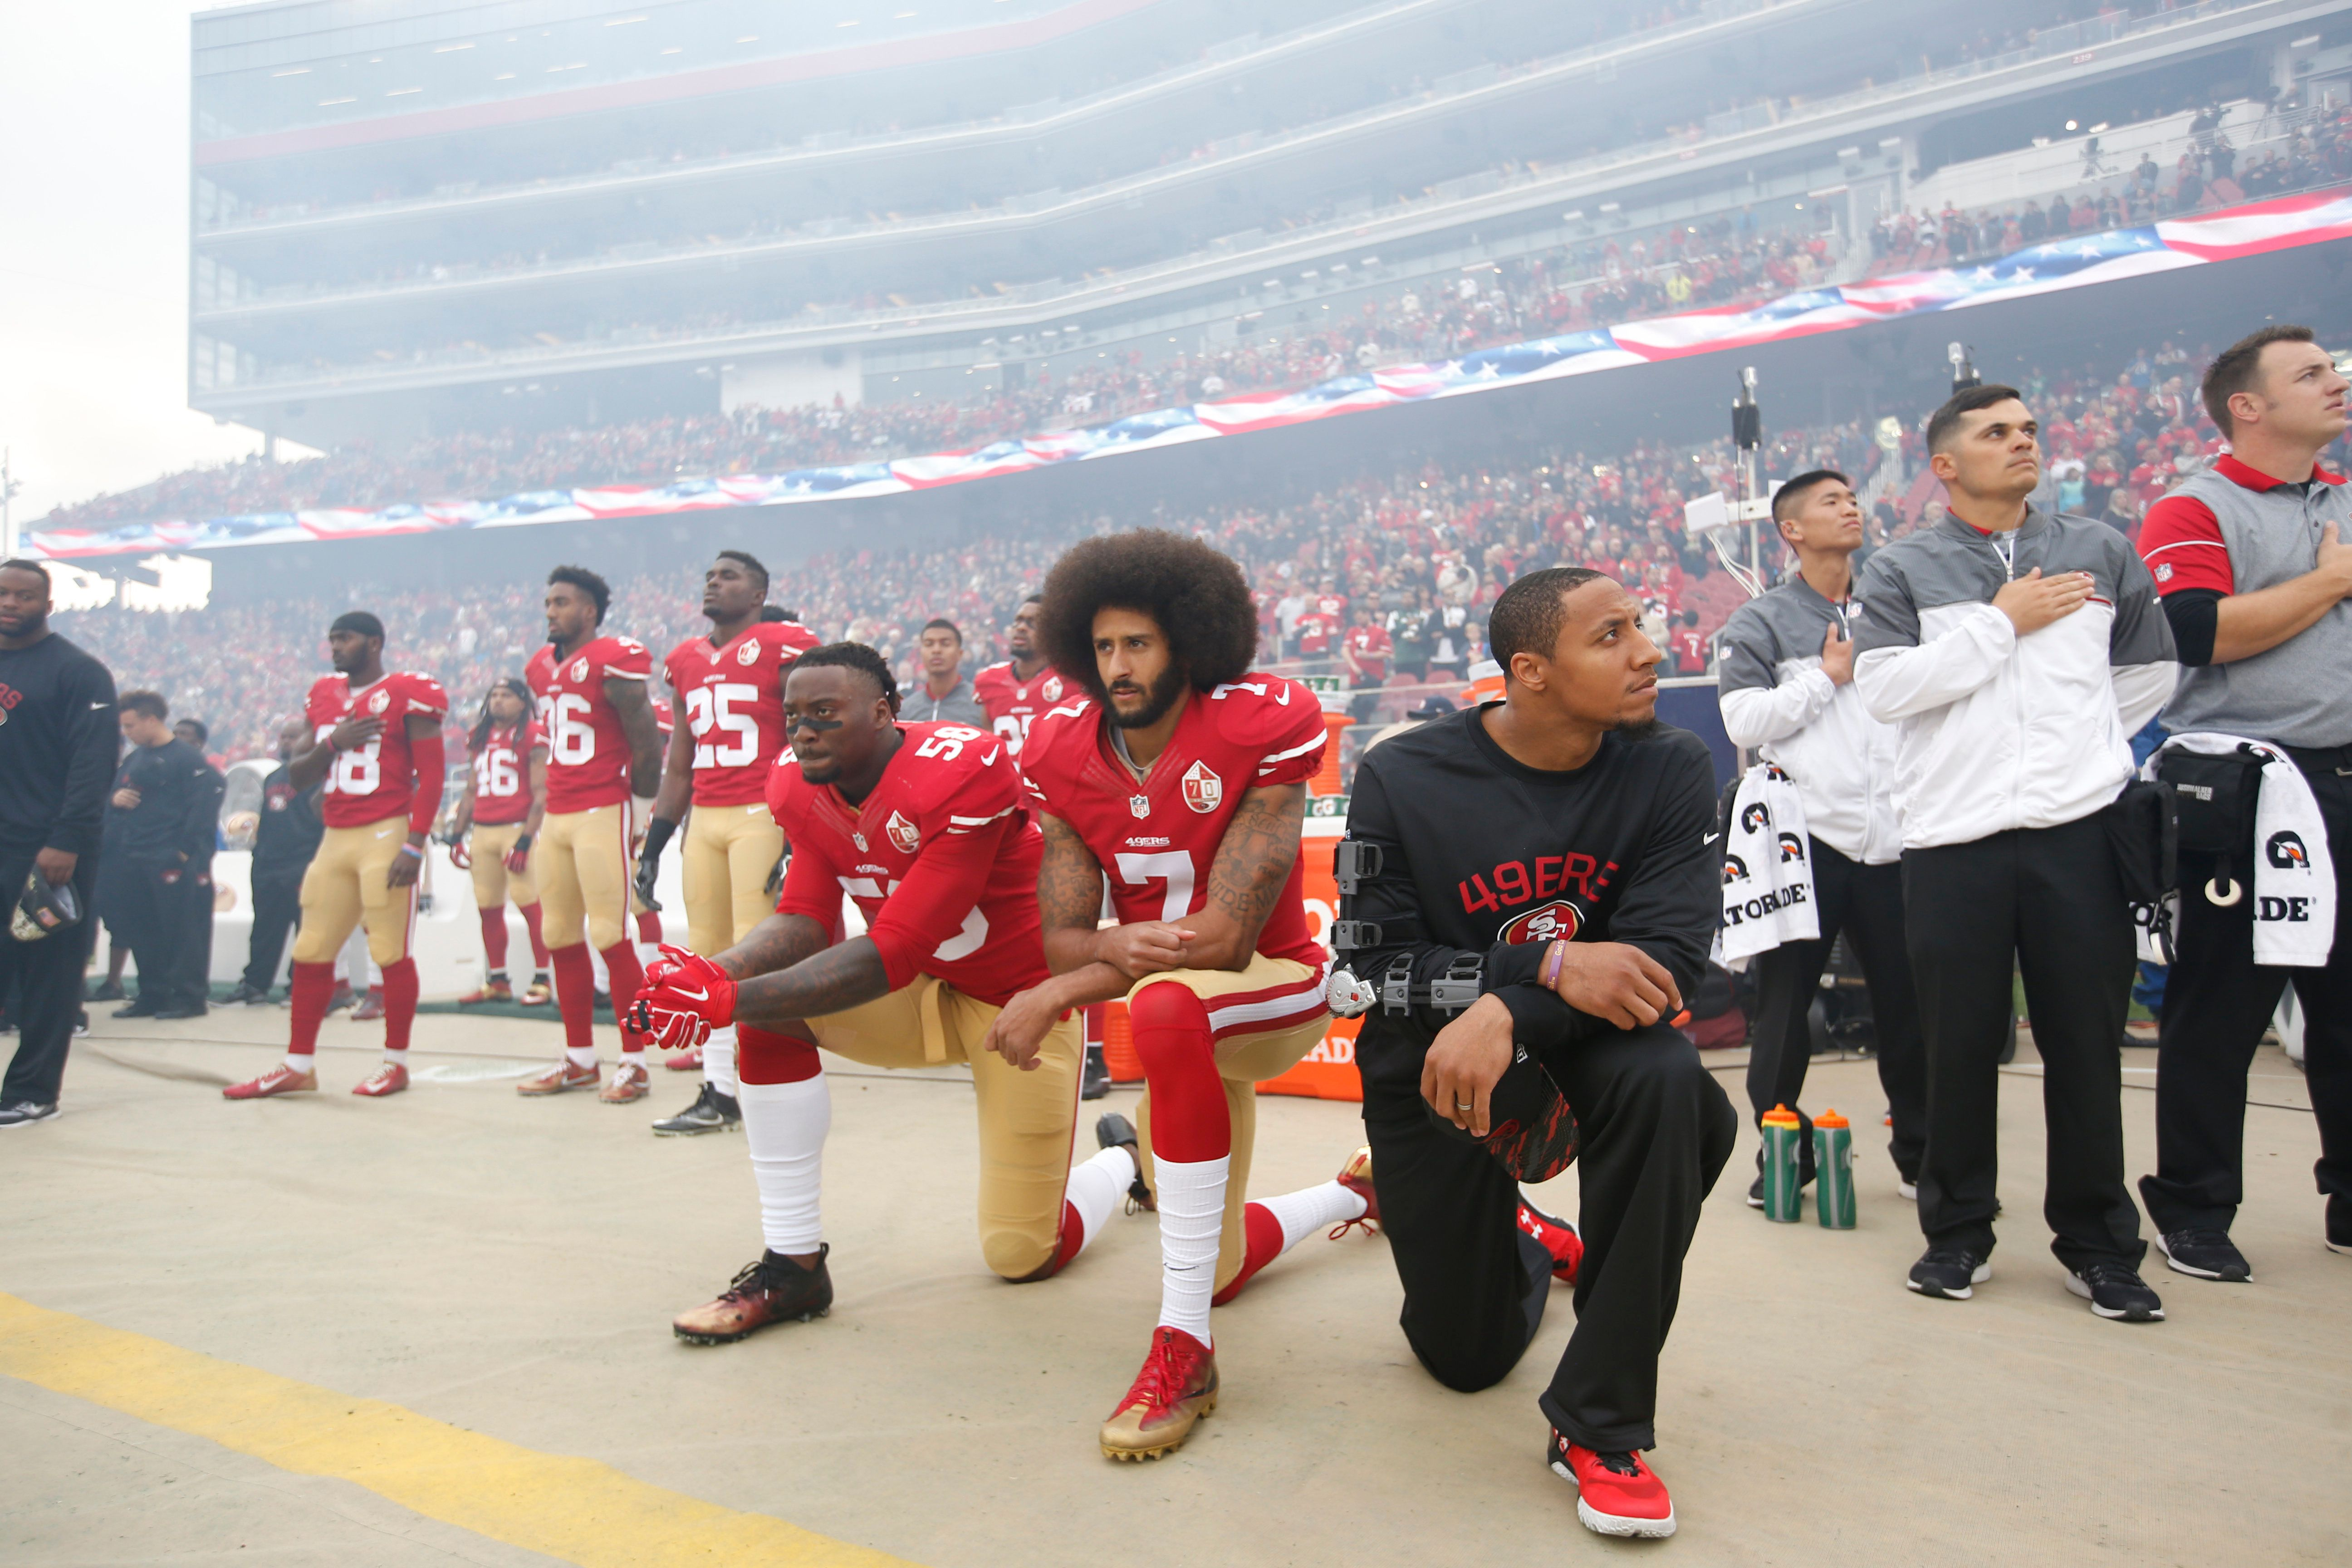 Colin Kaepernick, center, protesting with fellow players Eli Harold (left) and Eric Reid (right) in December 2016.